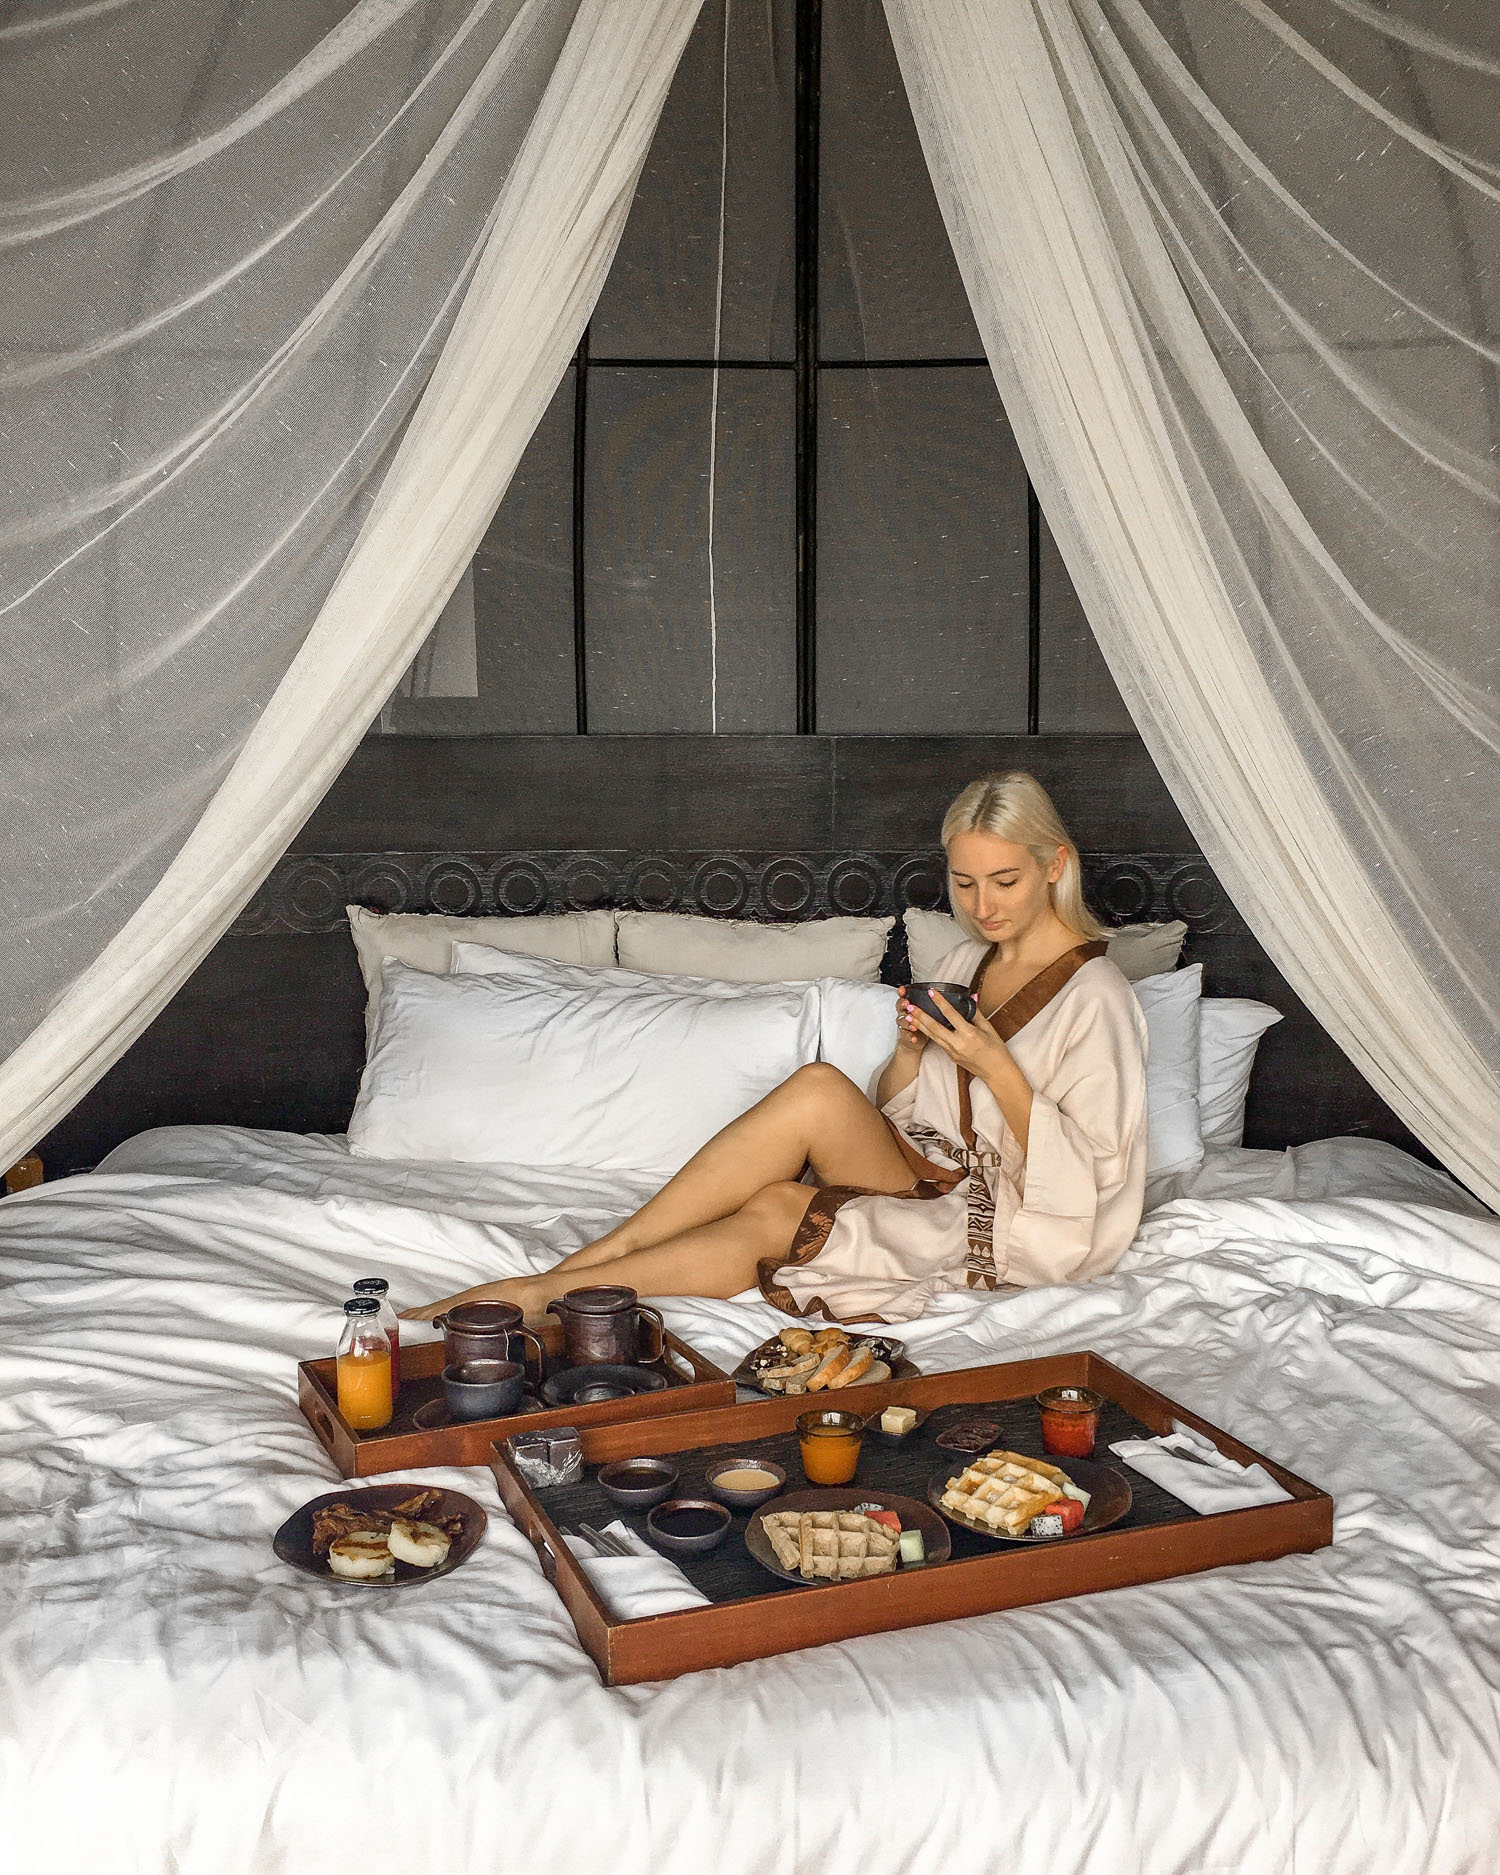 Gluten free breakfast in bed at keemal | How to pick a hotel when traveling with a food allergy